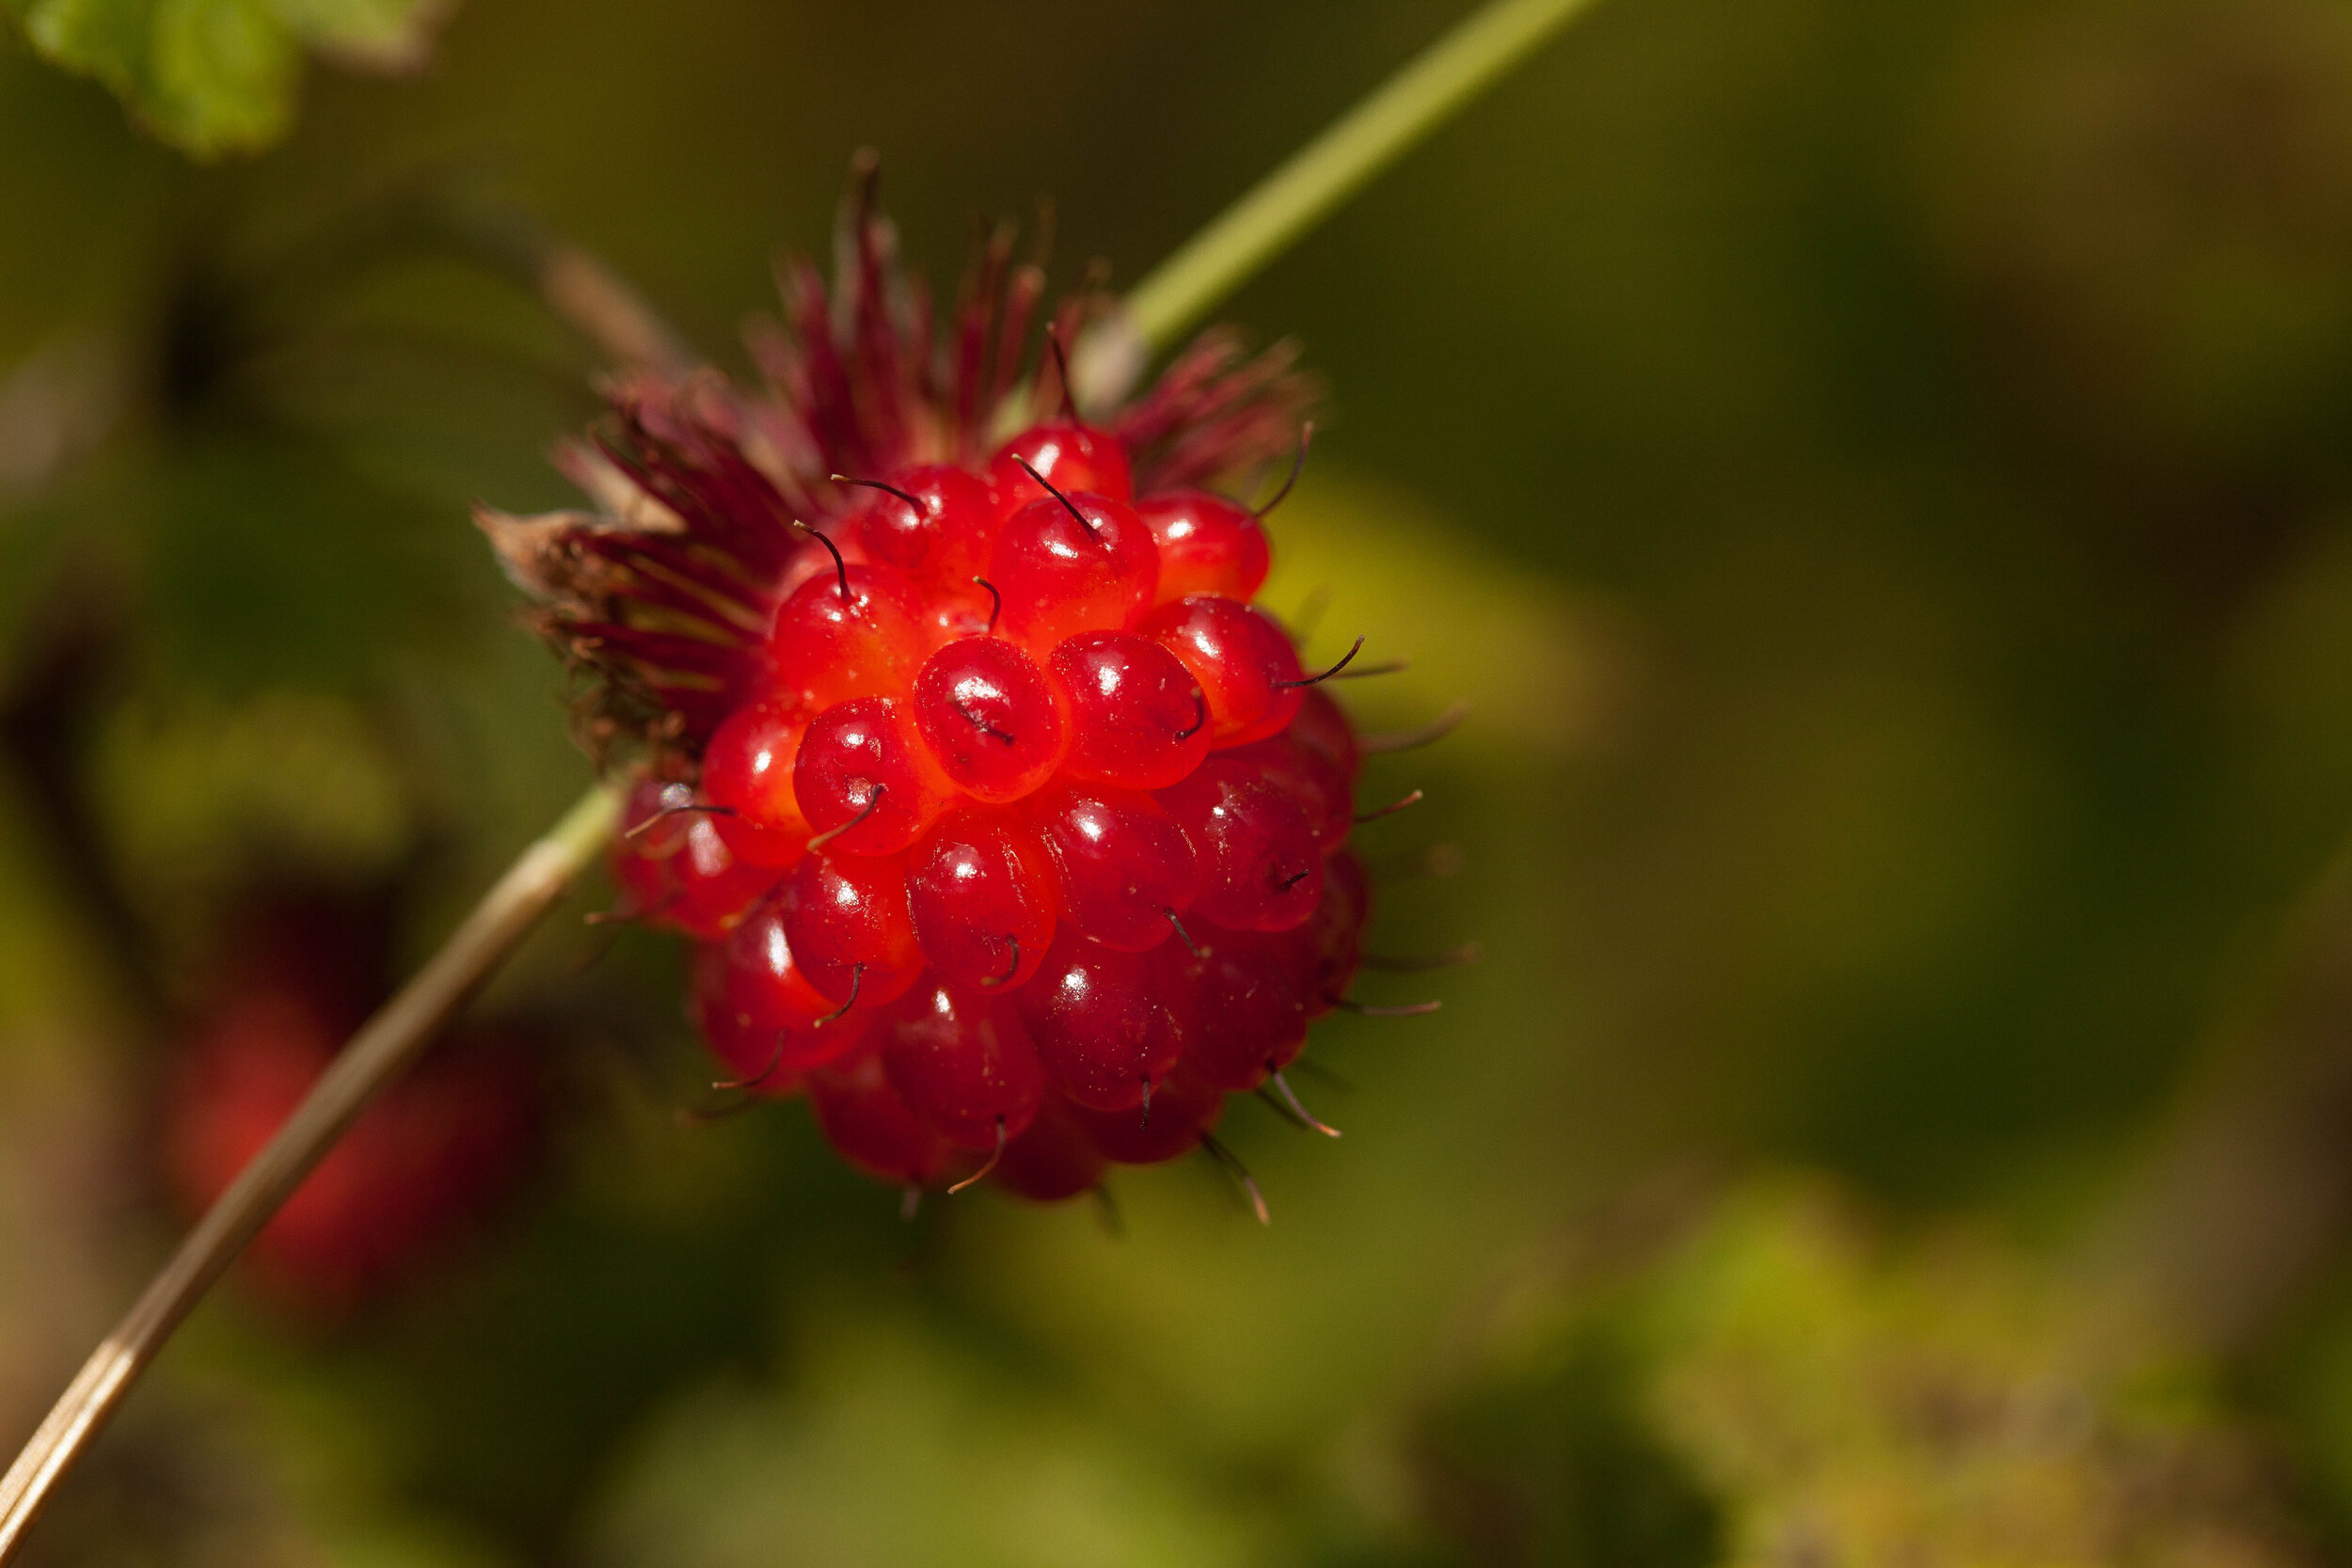 Salmonberries were abundant. A nice change from our diet of passage food.